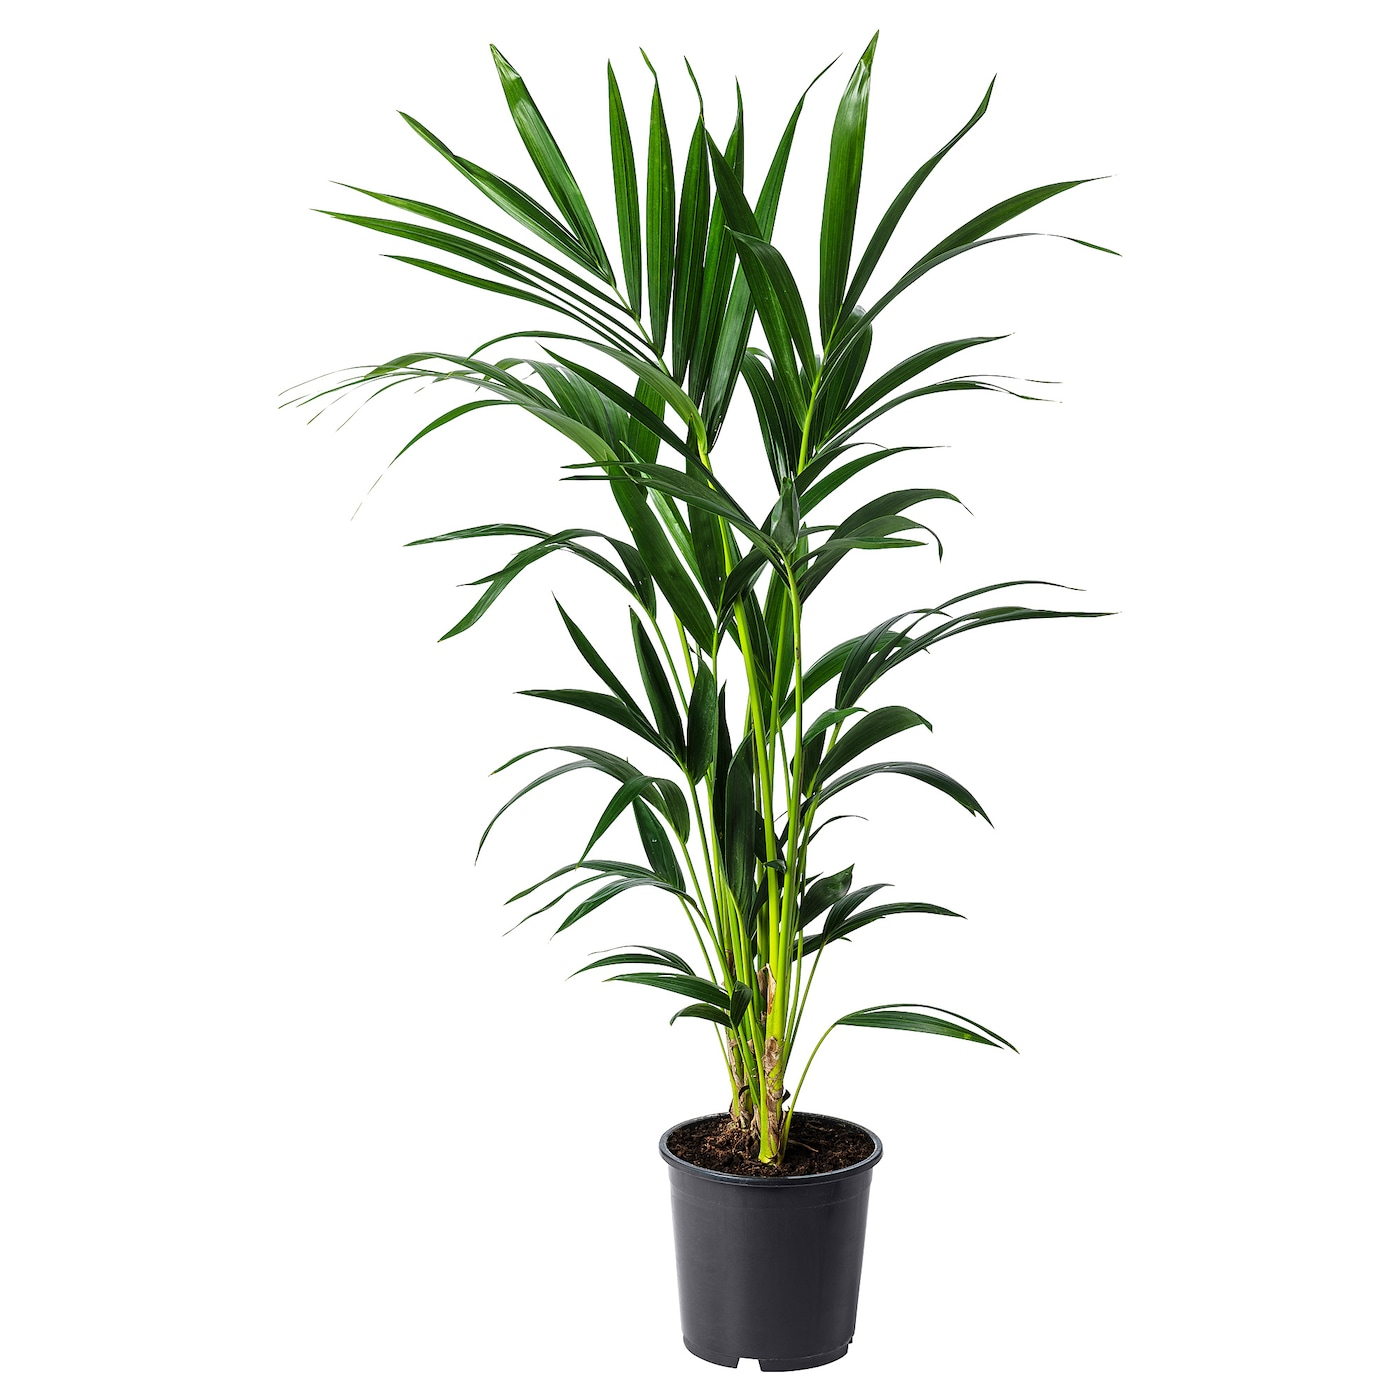 howea forsteriana potted plant kentia palm 19 cm ikea. Black Bedroom Furniture Sets. Home Design Ideas